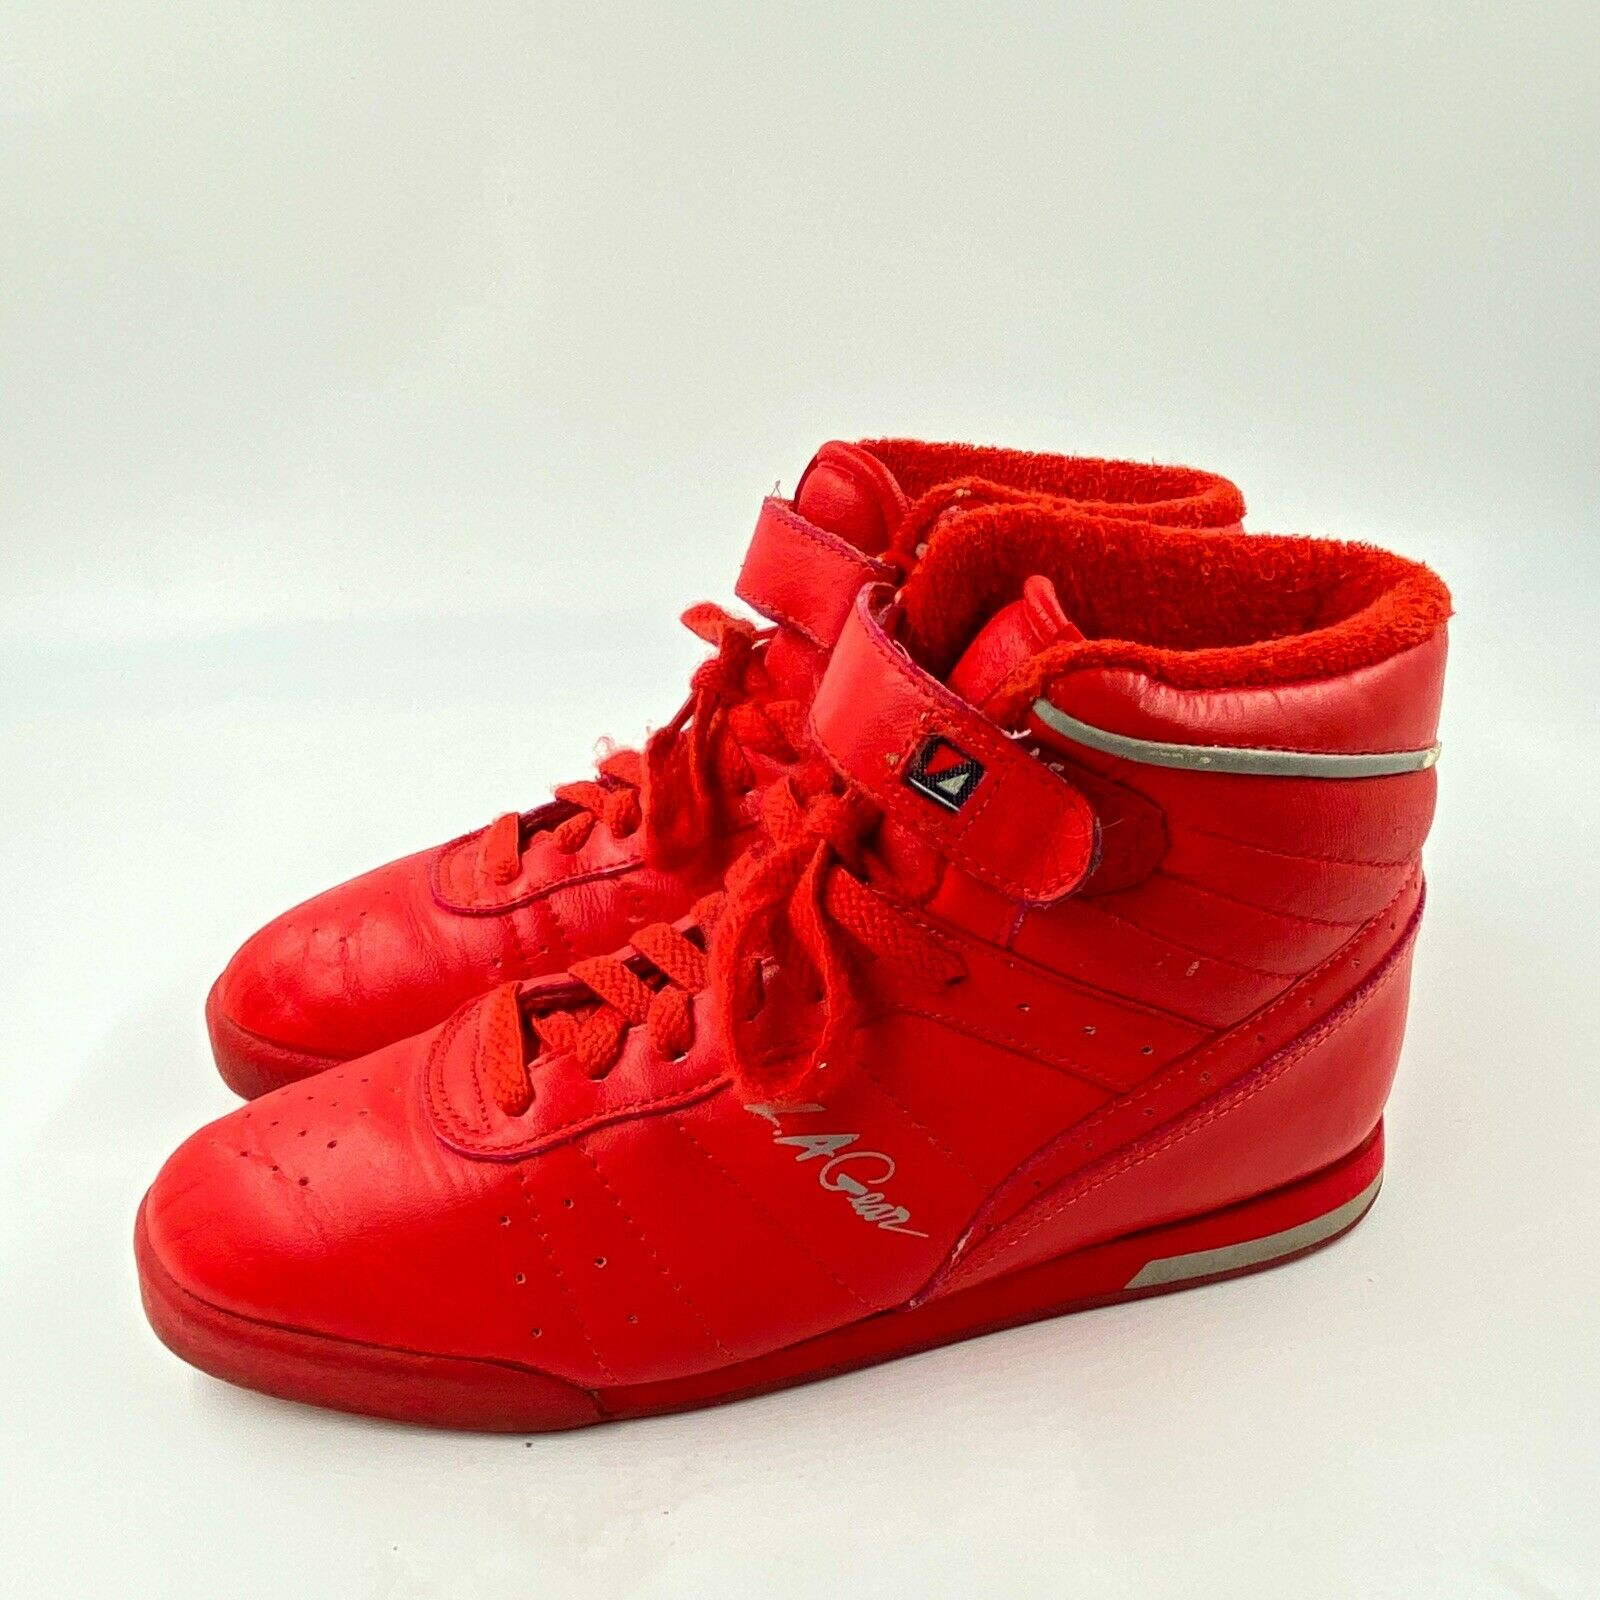 L.A. Gear 6.5 Vintage 80s Red Sneakers 90s Tennis… - image 1